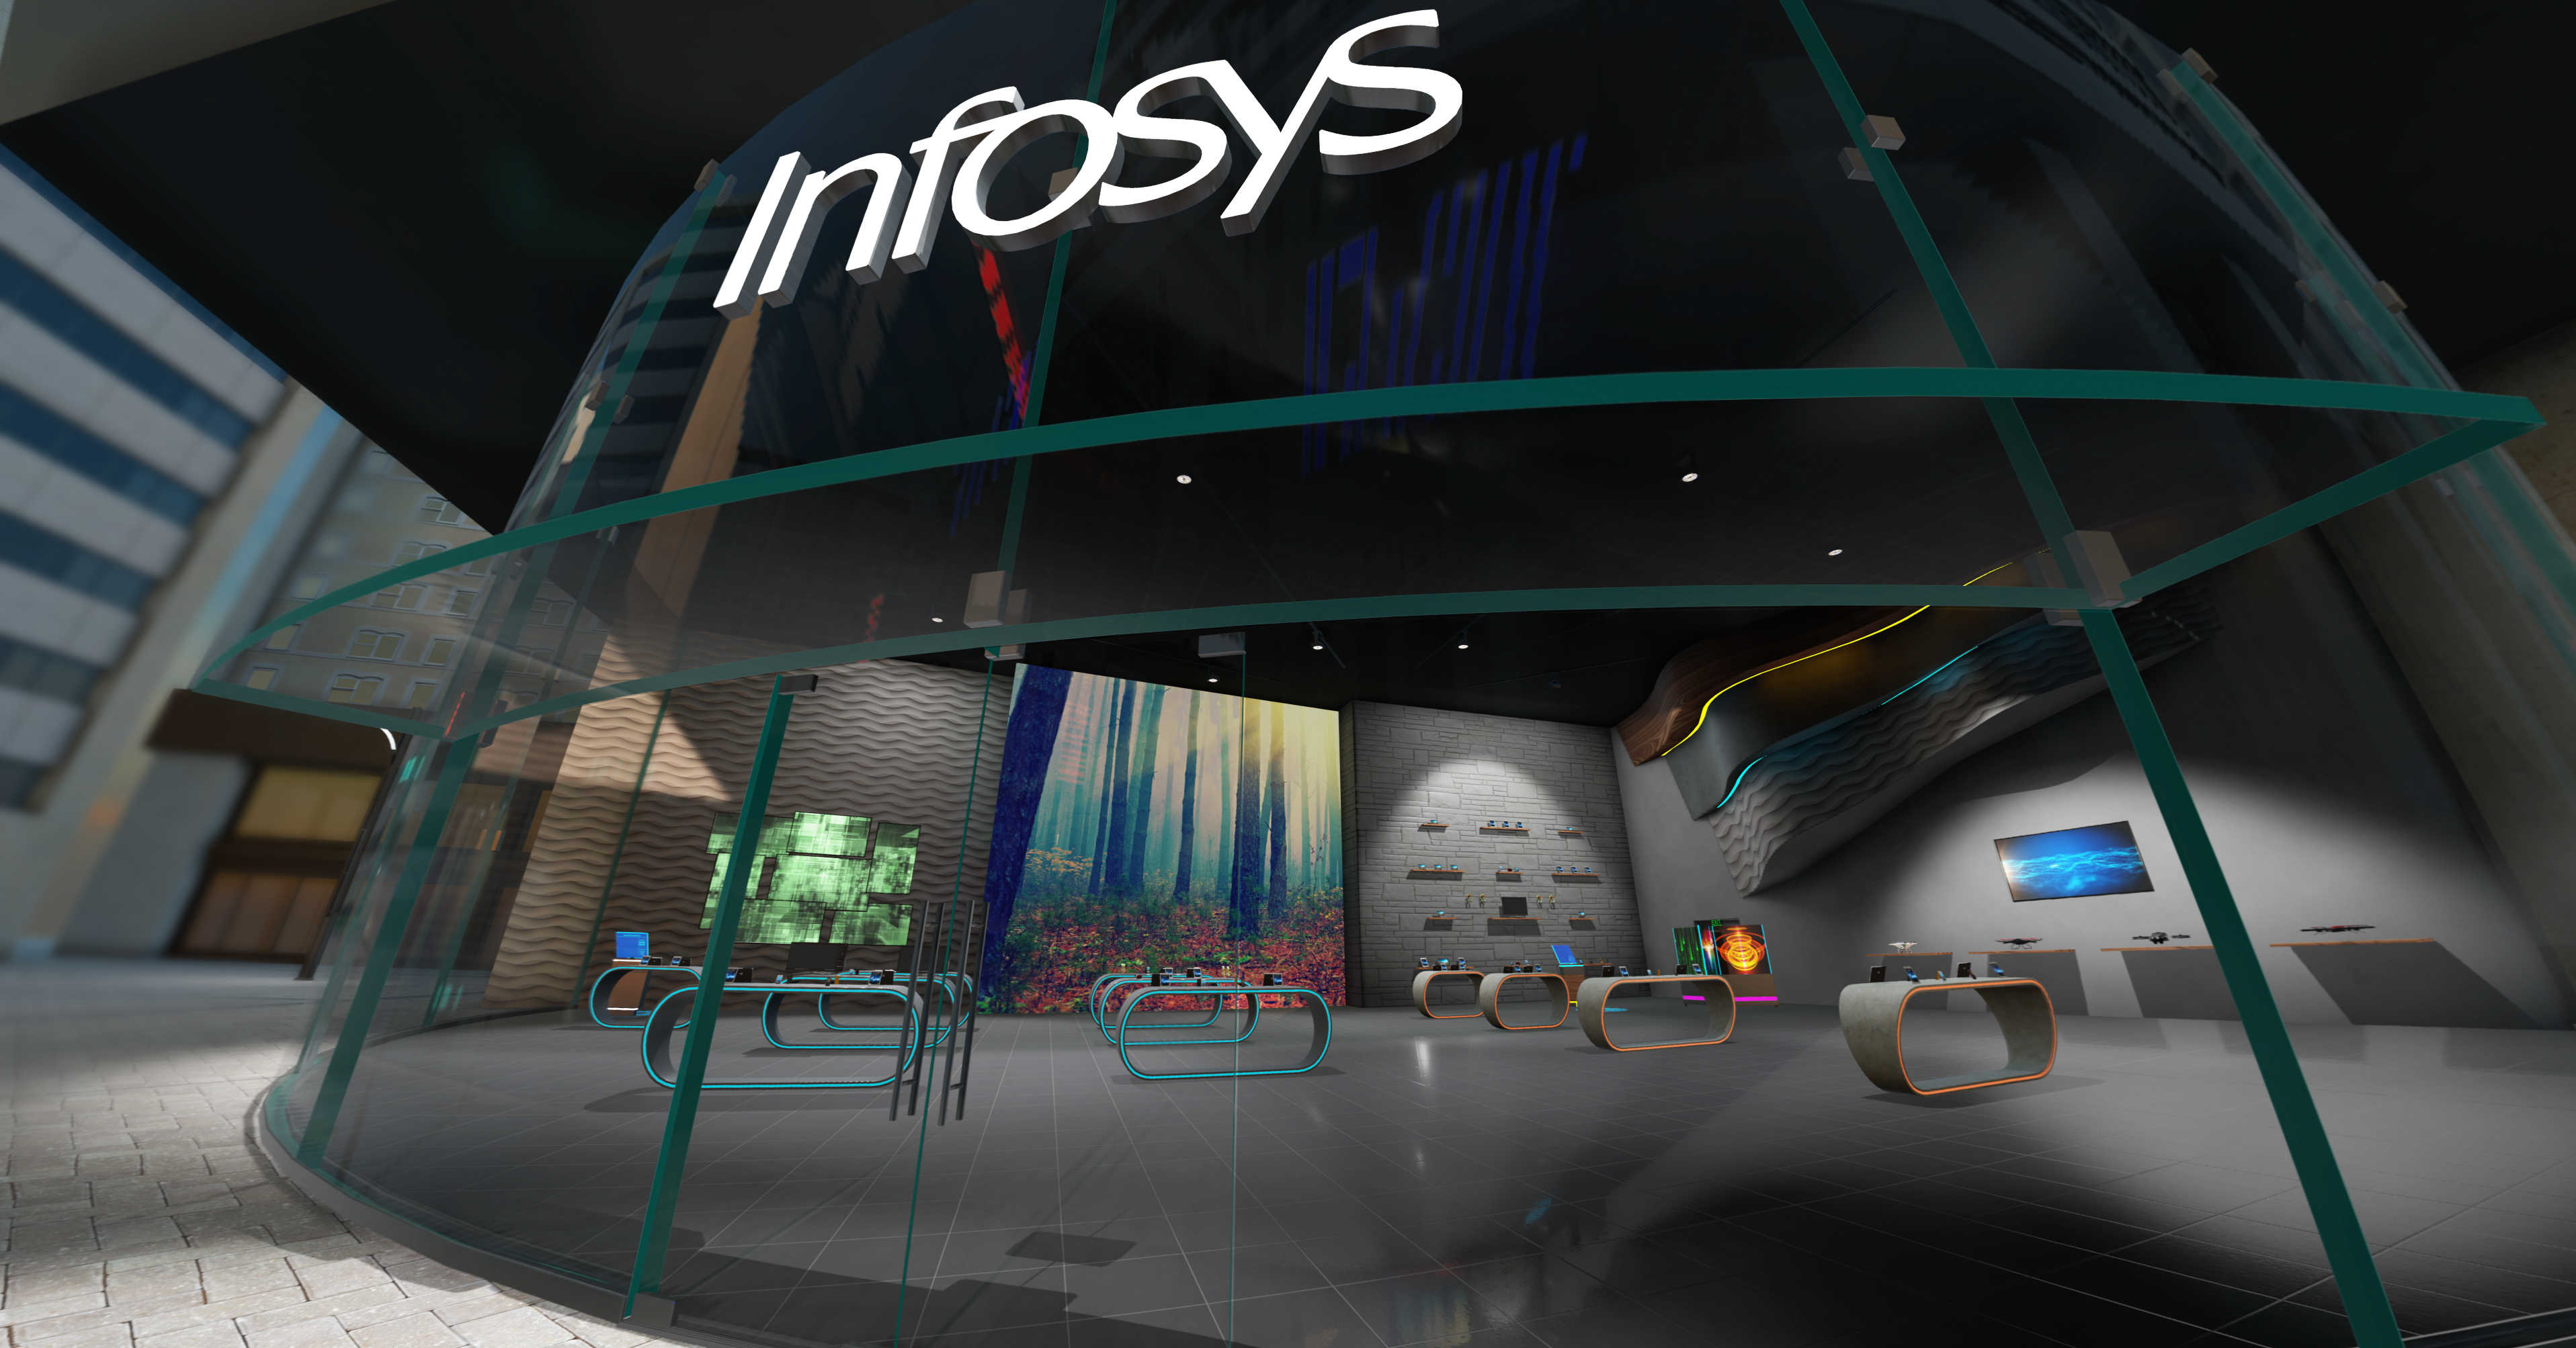 Infosys Retail Experience Image7